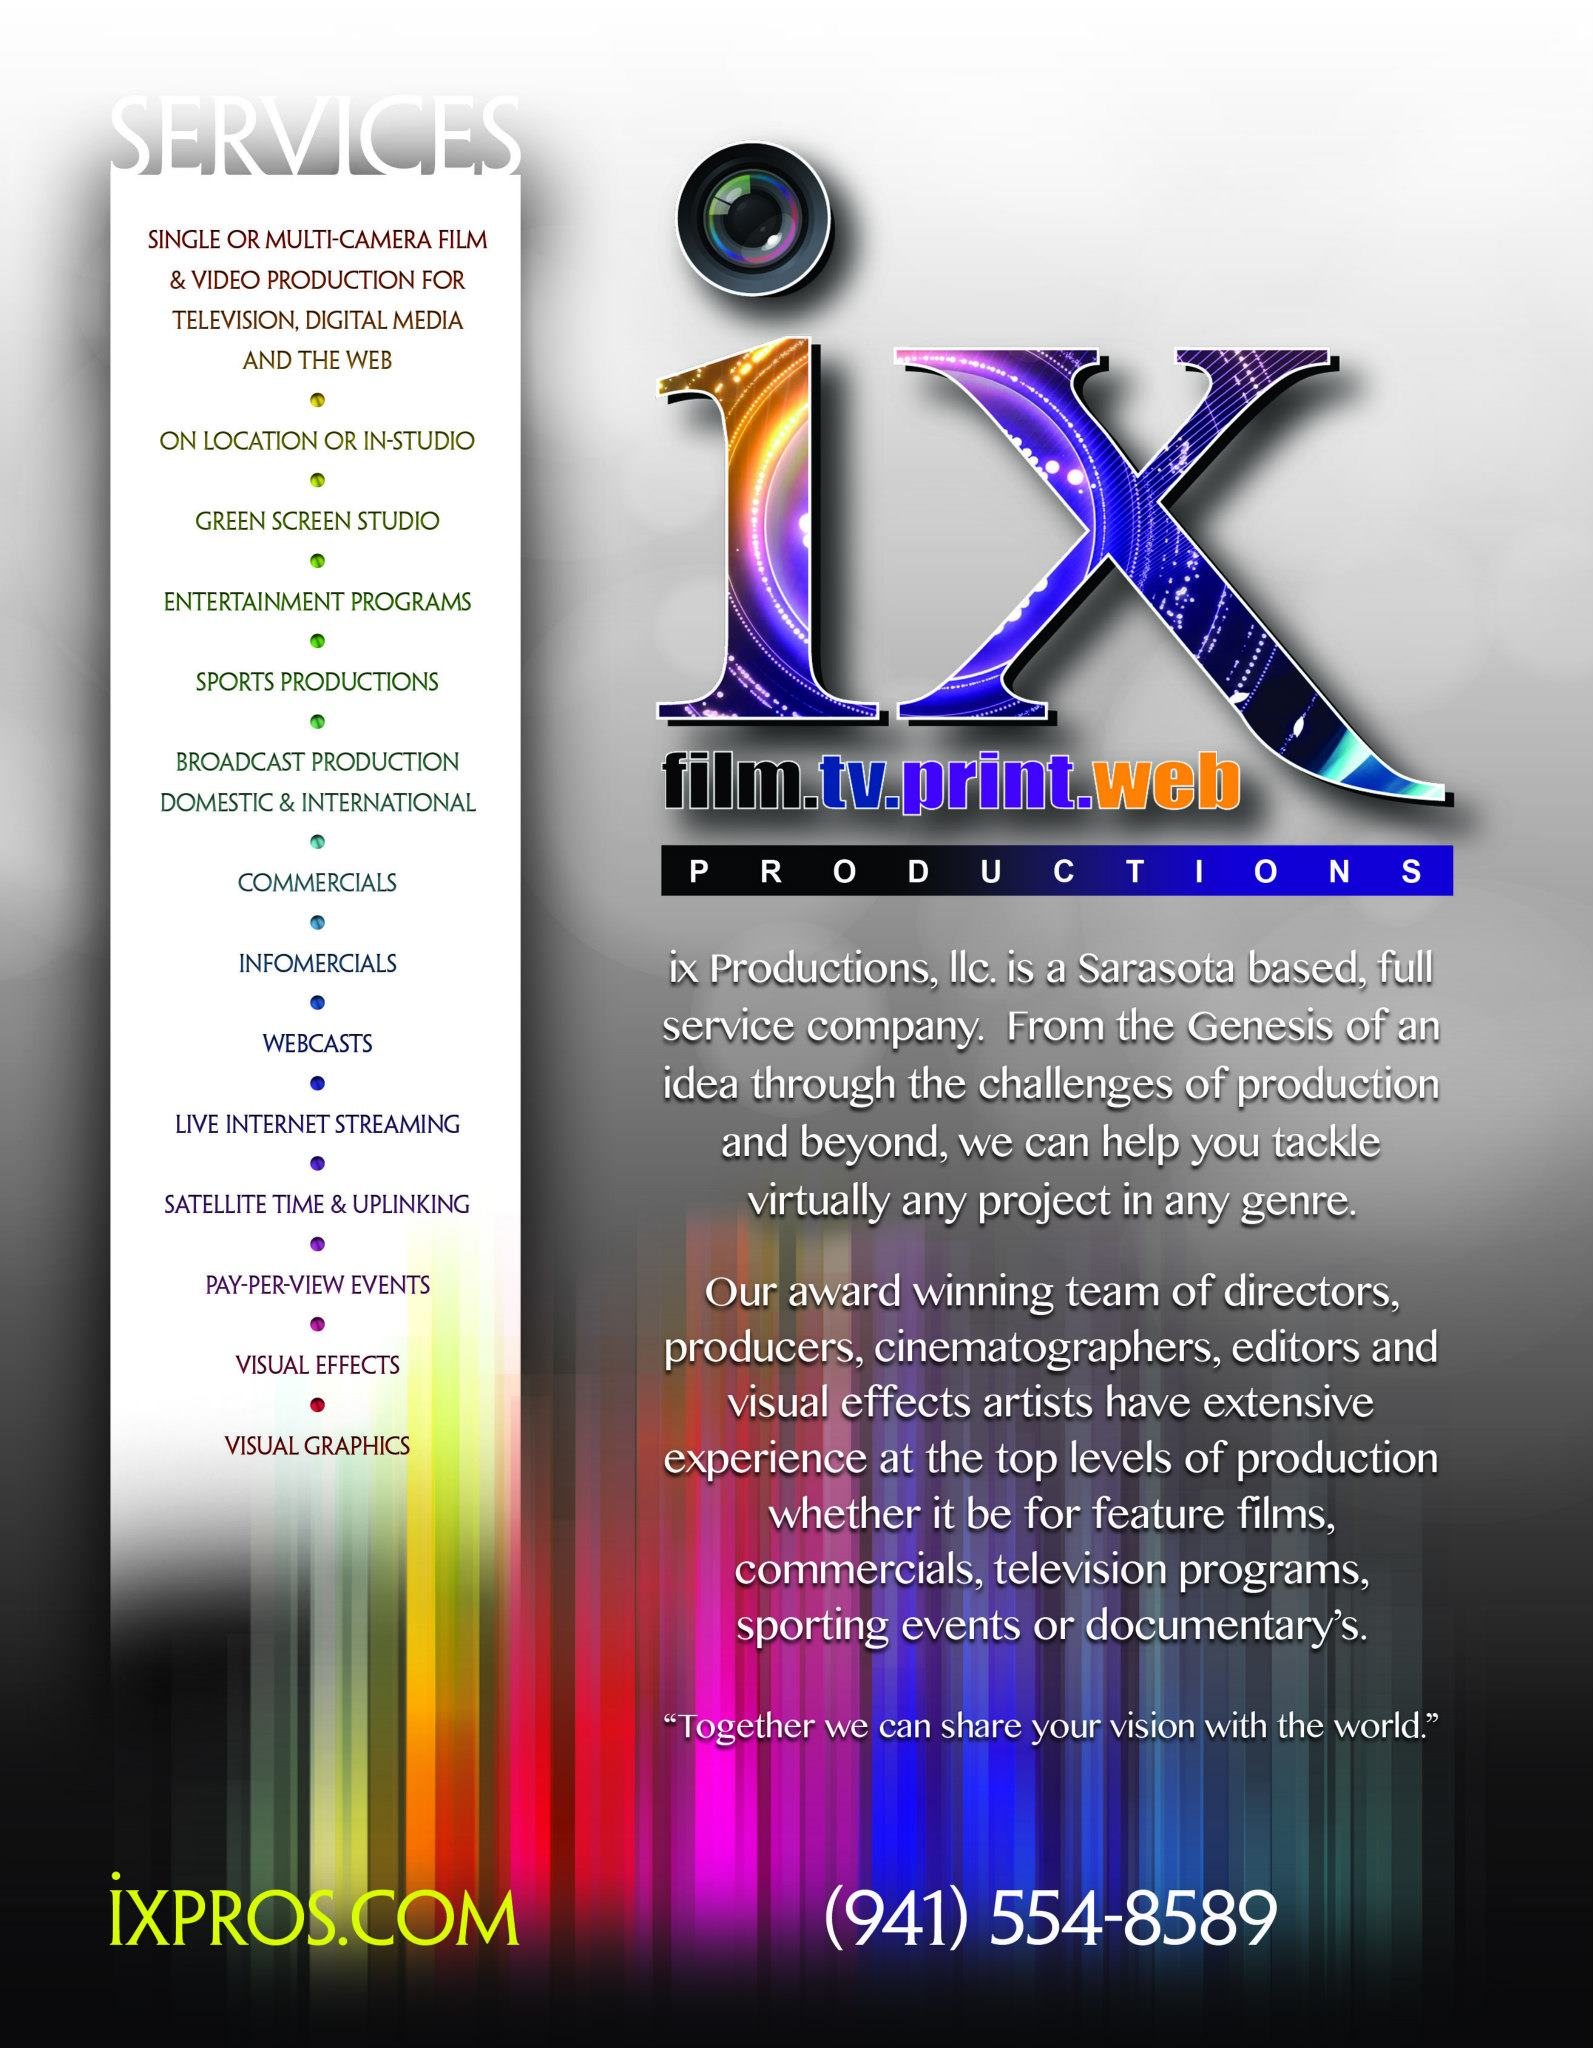 IXpros flyer design by Instudio E